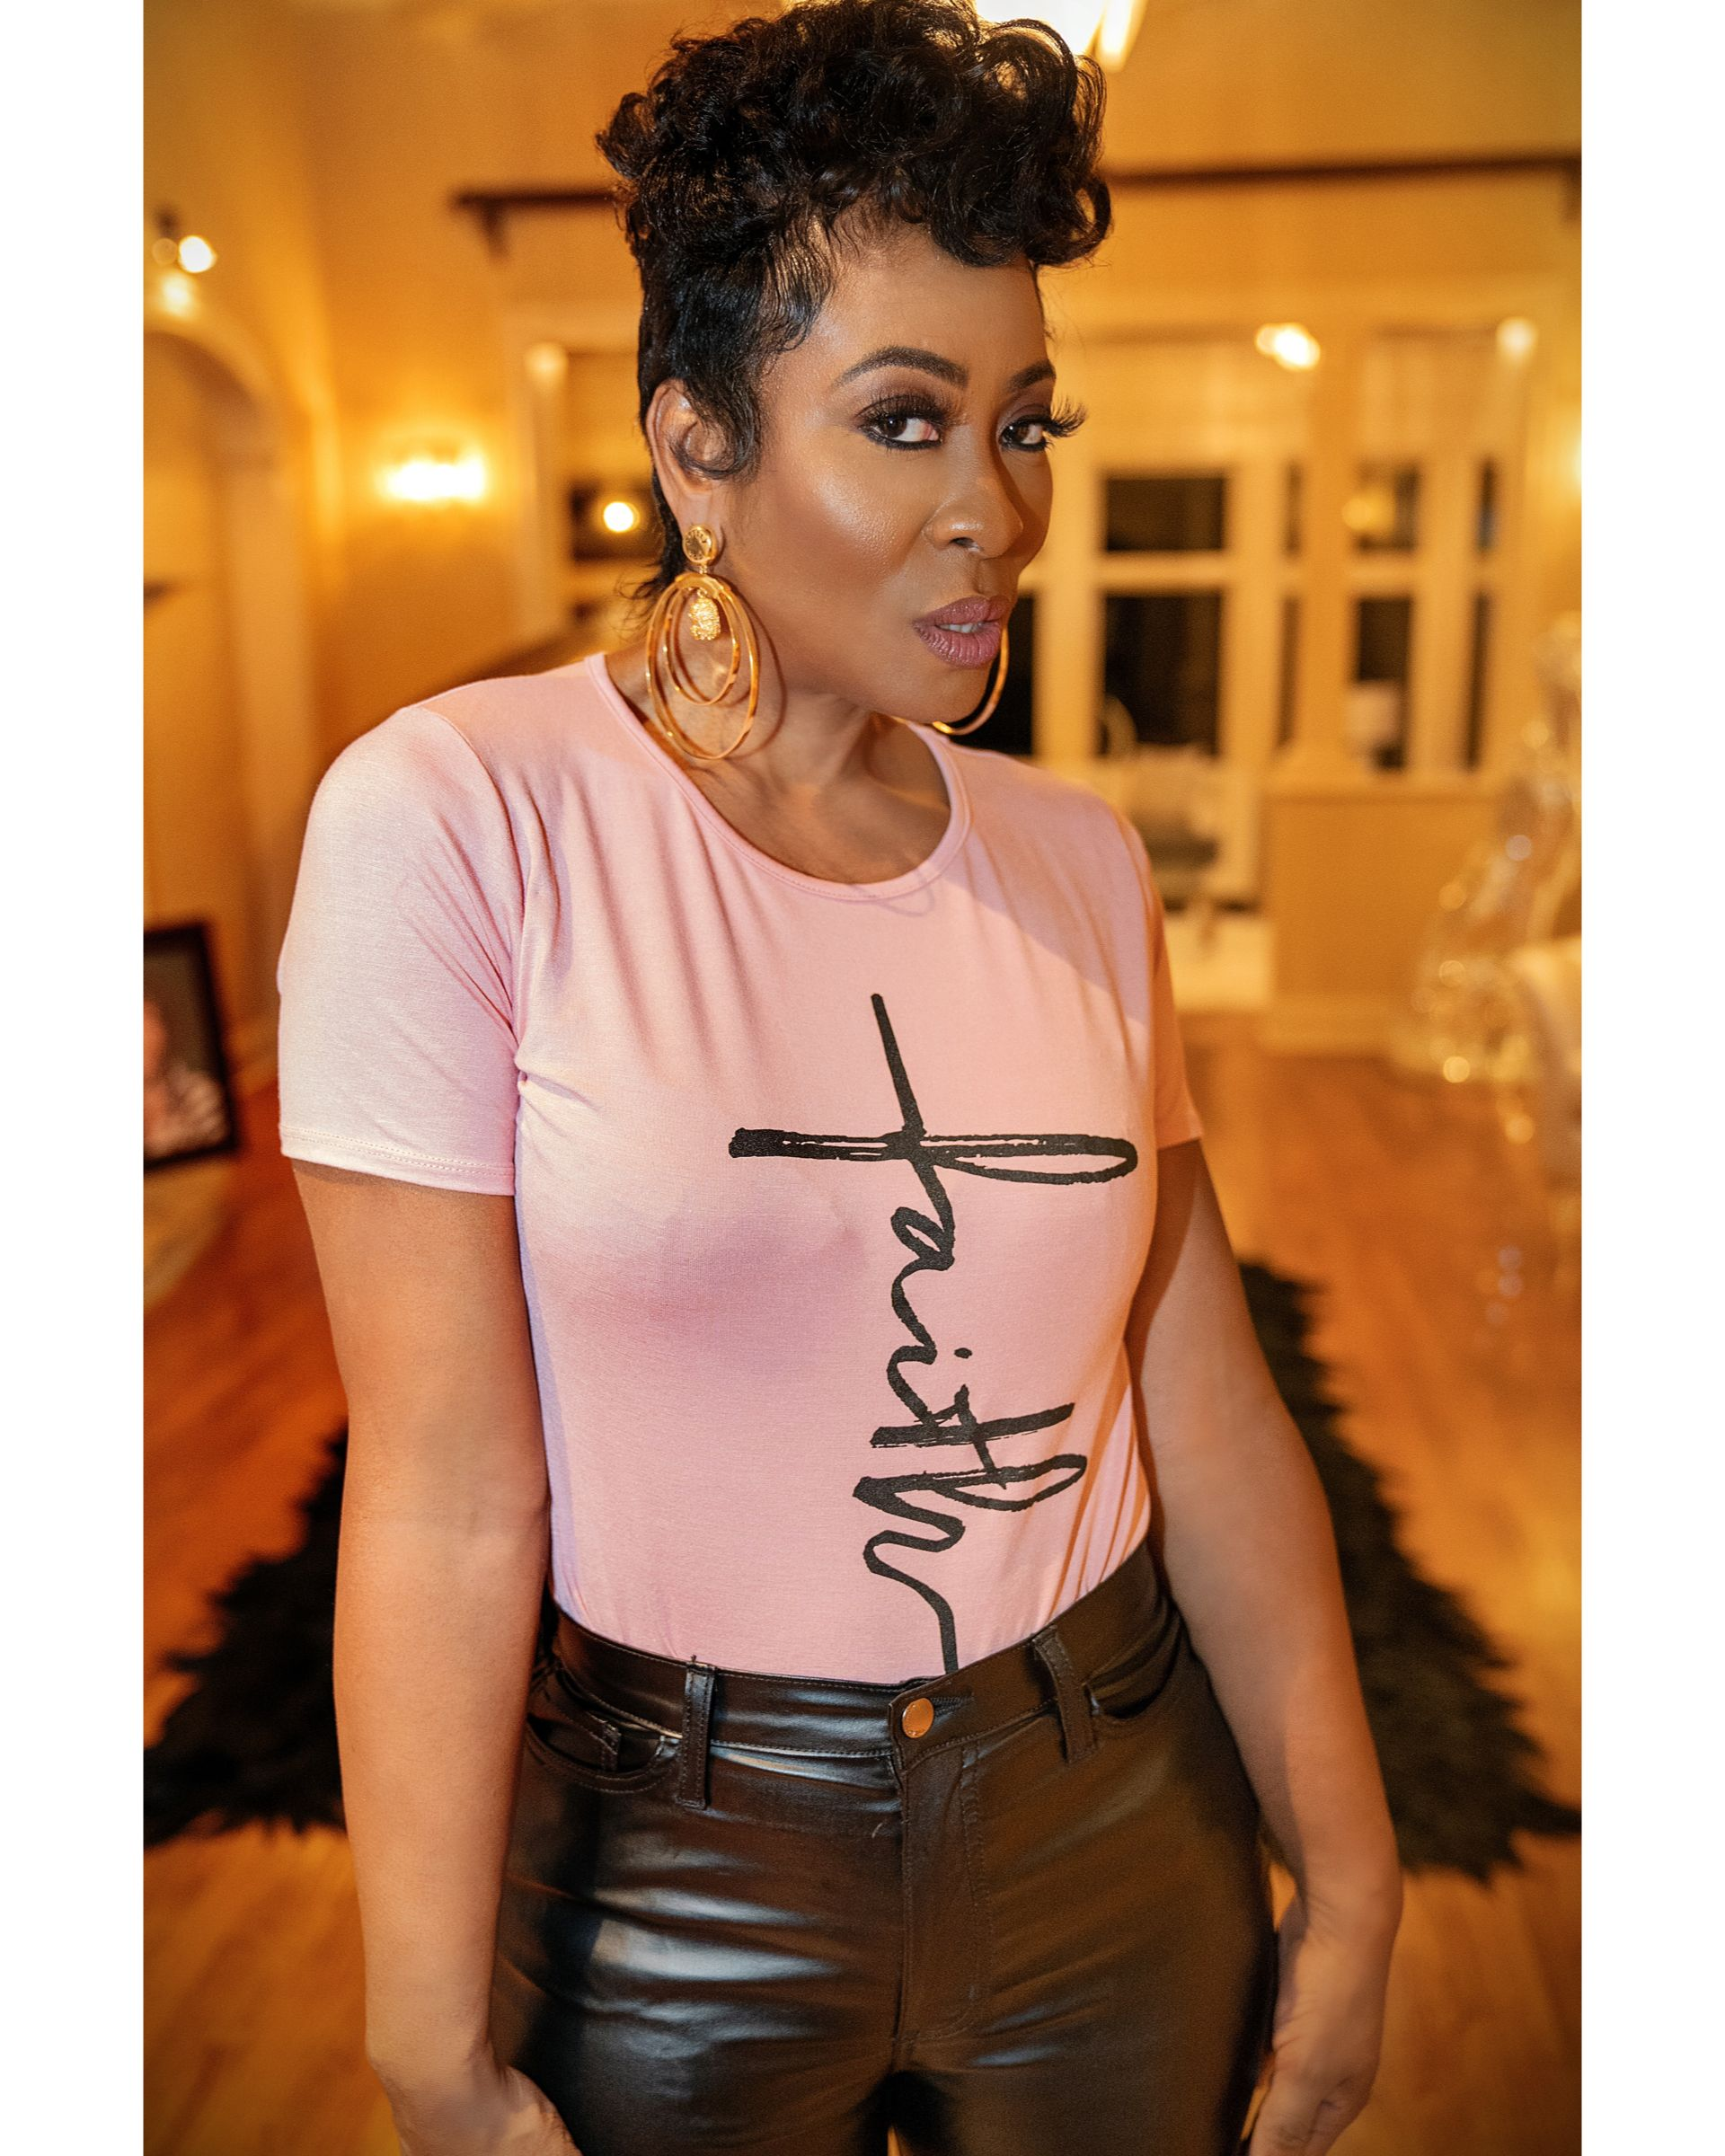 Tees And Thangs 18k Gold Gritty Hoops Earrings Keep The Faith Tee Available To Buy At Grittysoul C Clothes For Women Faith Tees Fashion